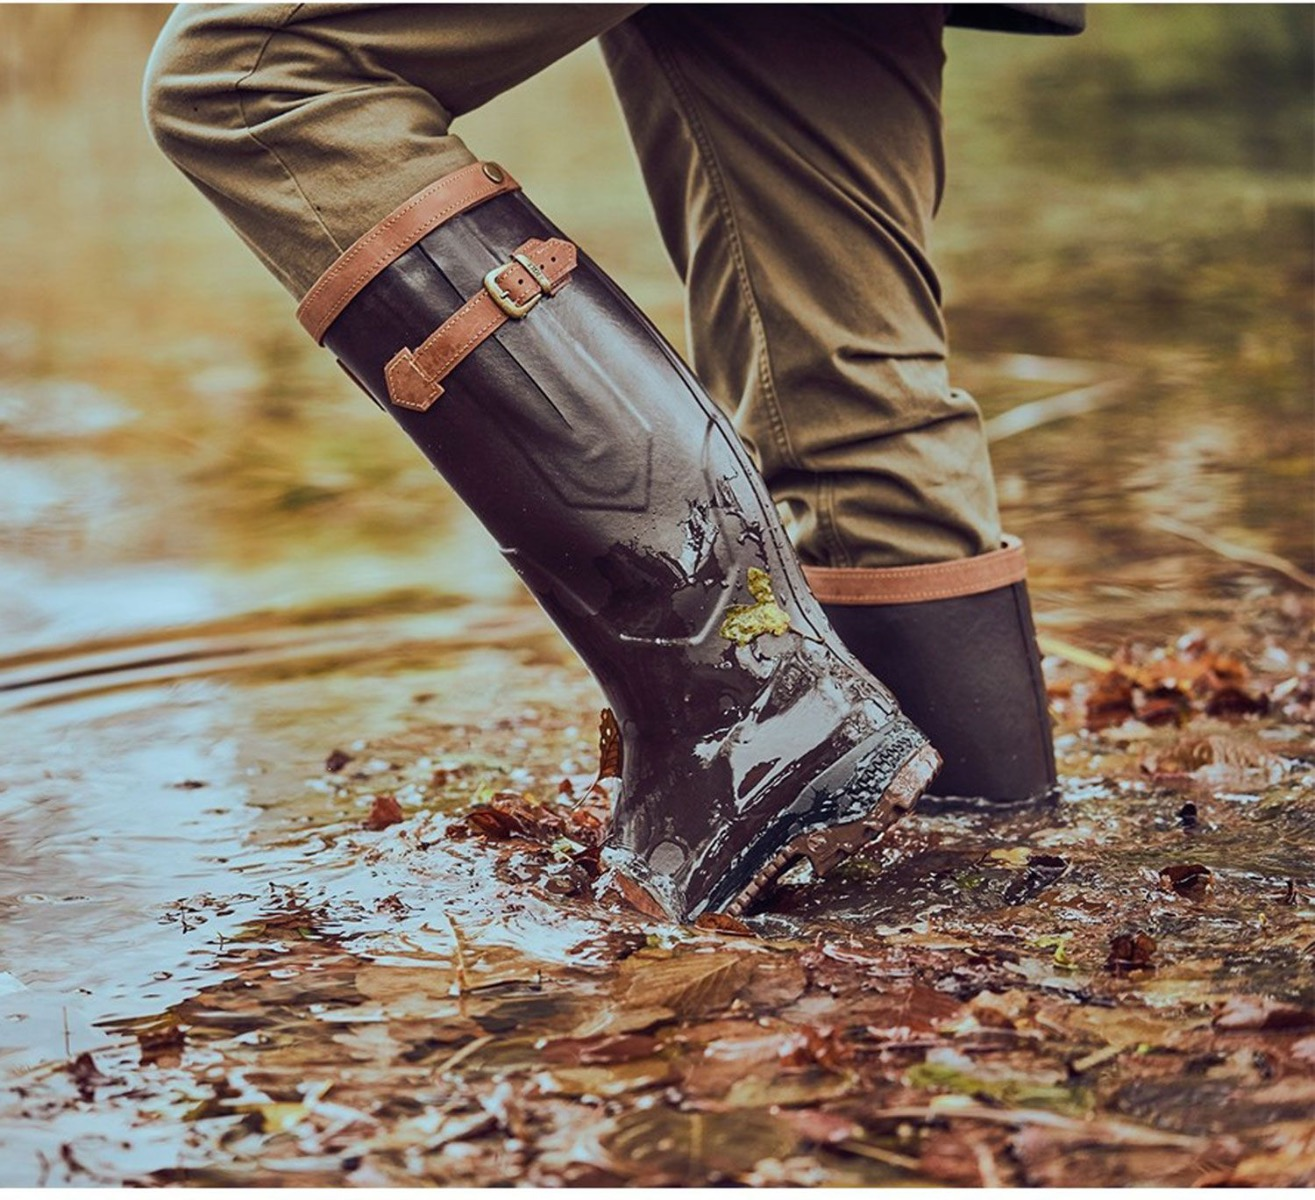 A person wearing a pair of wellington boots walking through a puddle.